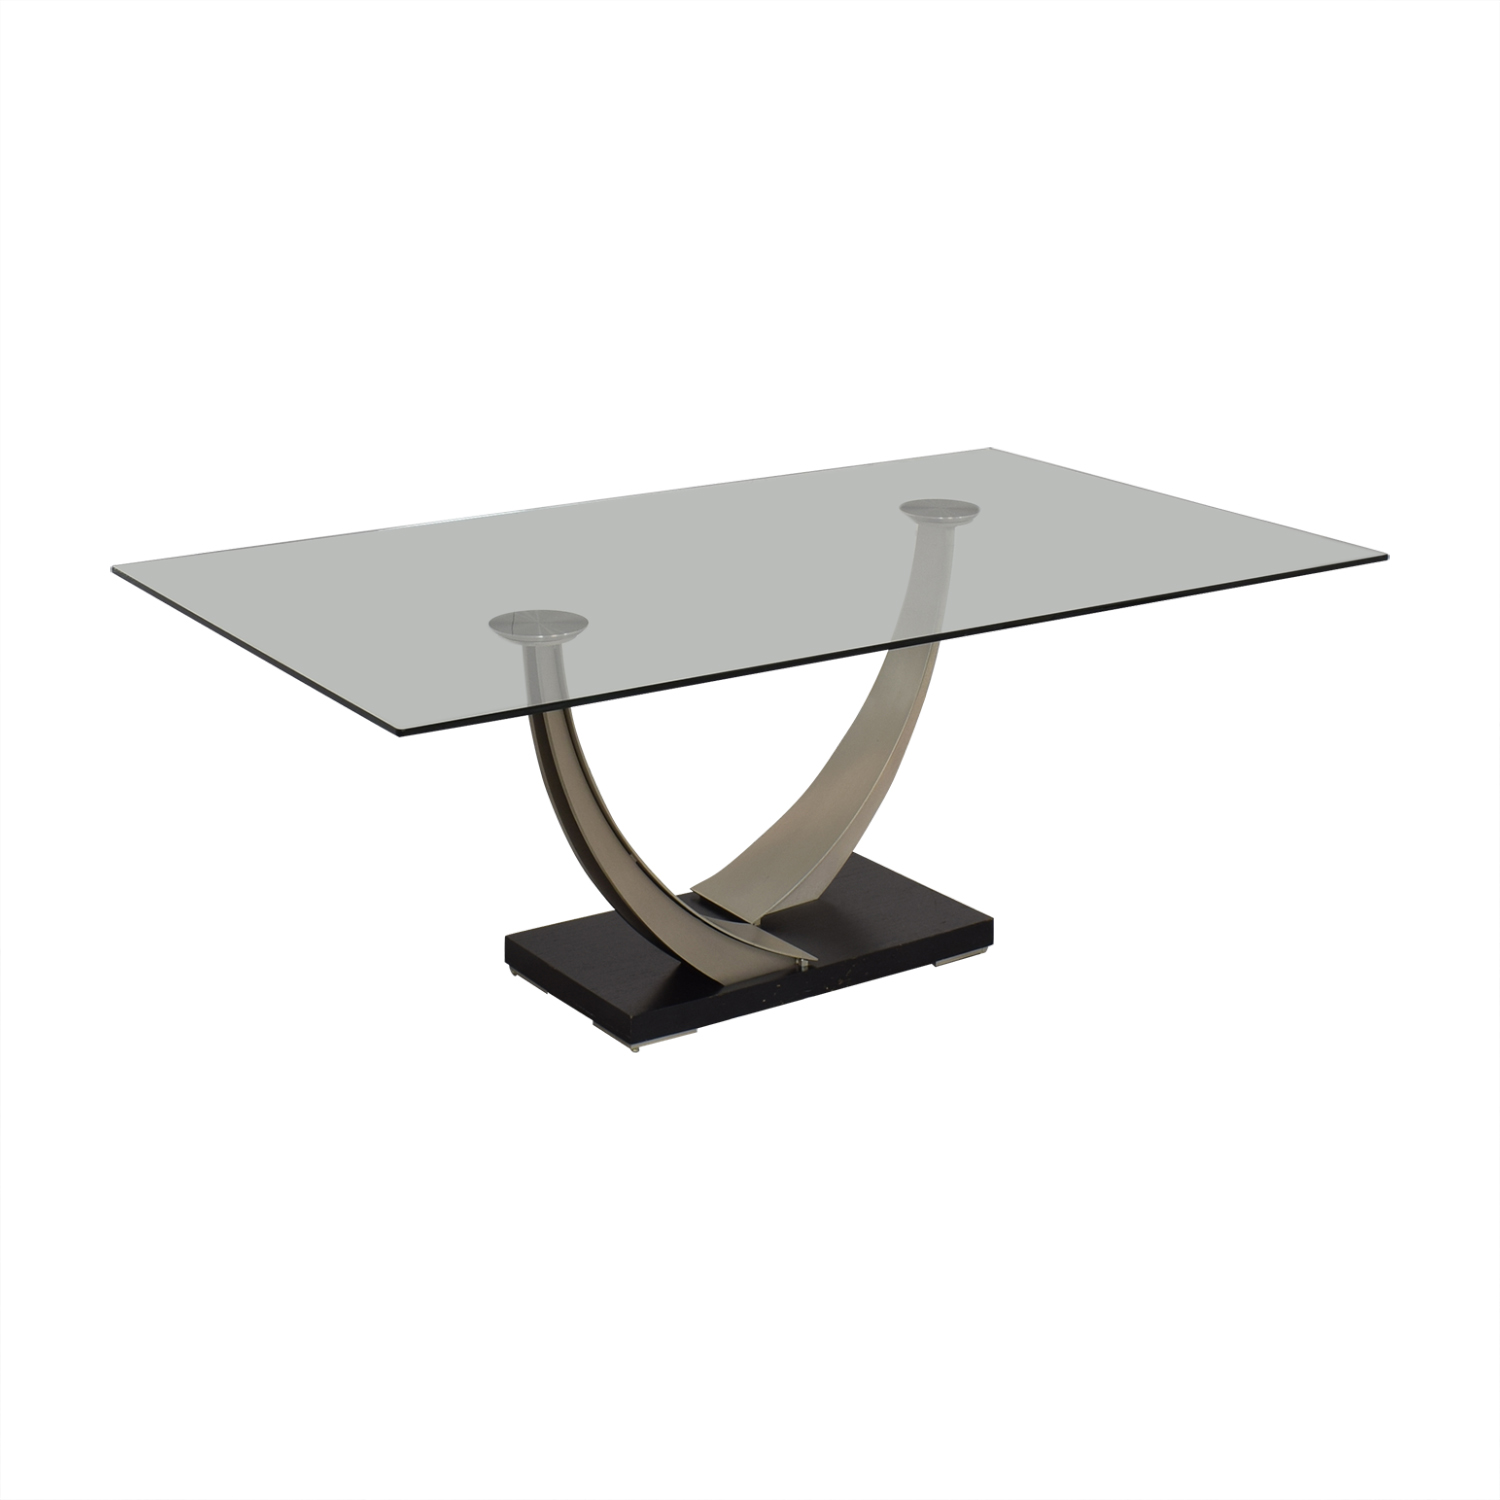 Modern Glass Top Dining Table price